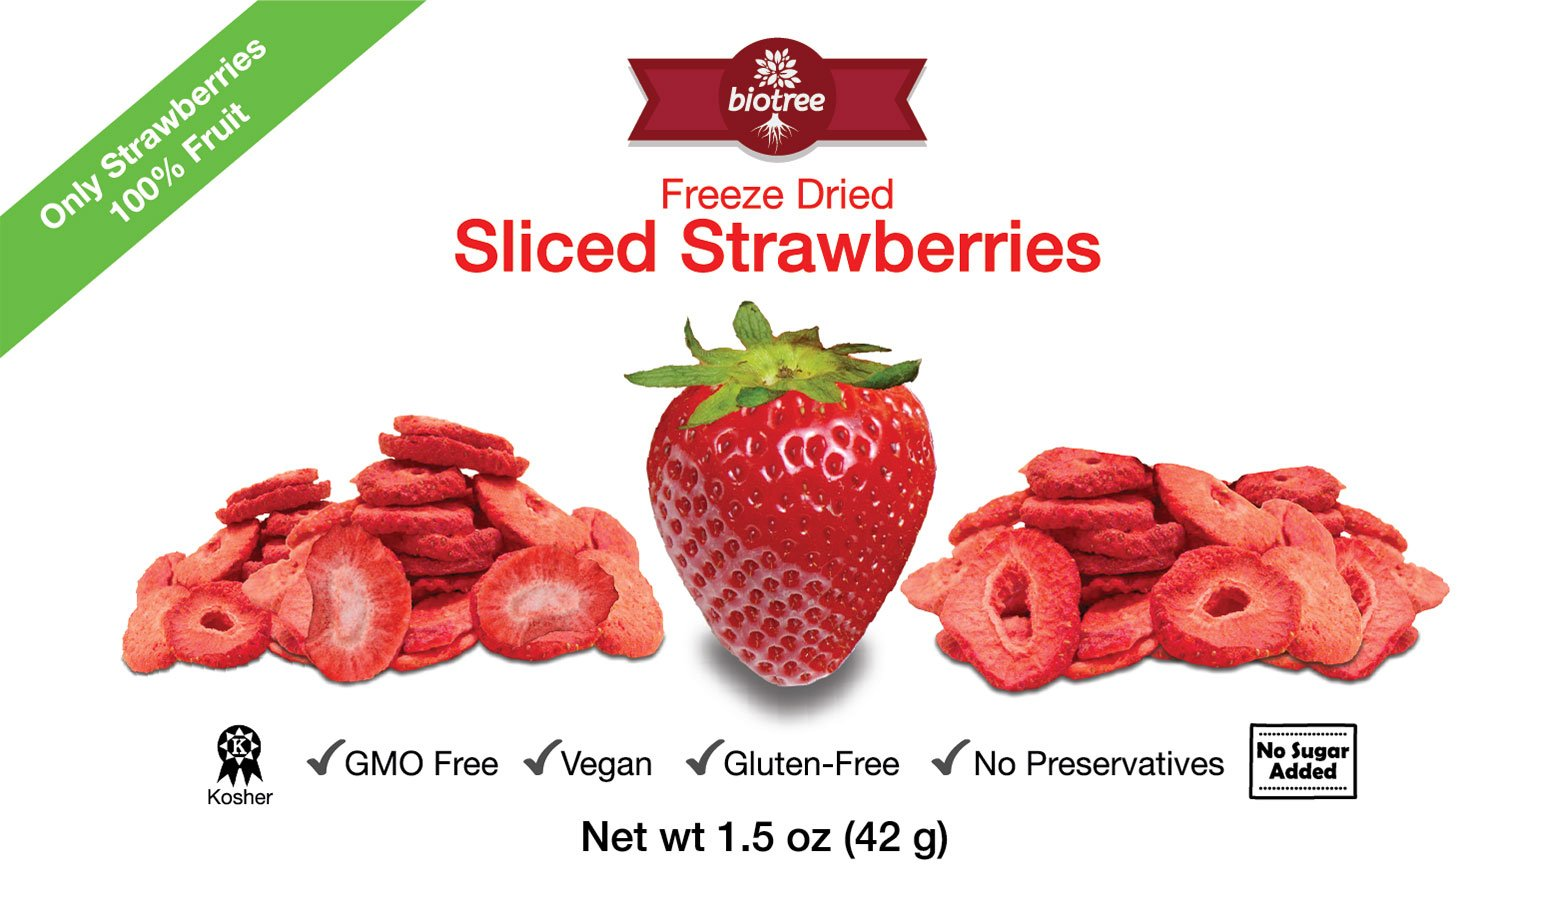 Delicious Strawberry Snack - All Natural Freeze Dried Sliced Strawberries: 100% Fruit with No Added Sugar, No Preservatives. Vegan, GMO Free, Kosher, Gluten-Free,Paleo, Delicious and Healthy Snack for Children and Adults, Tastes Great, Add to Smoothies, O by BioTree Naturals (Image #1)